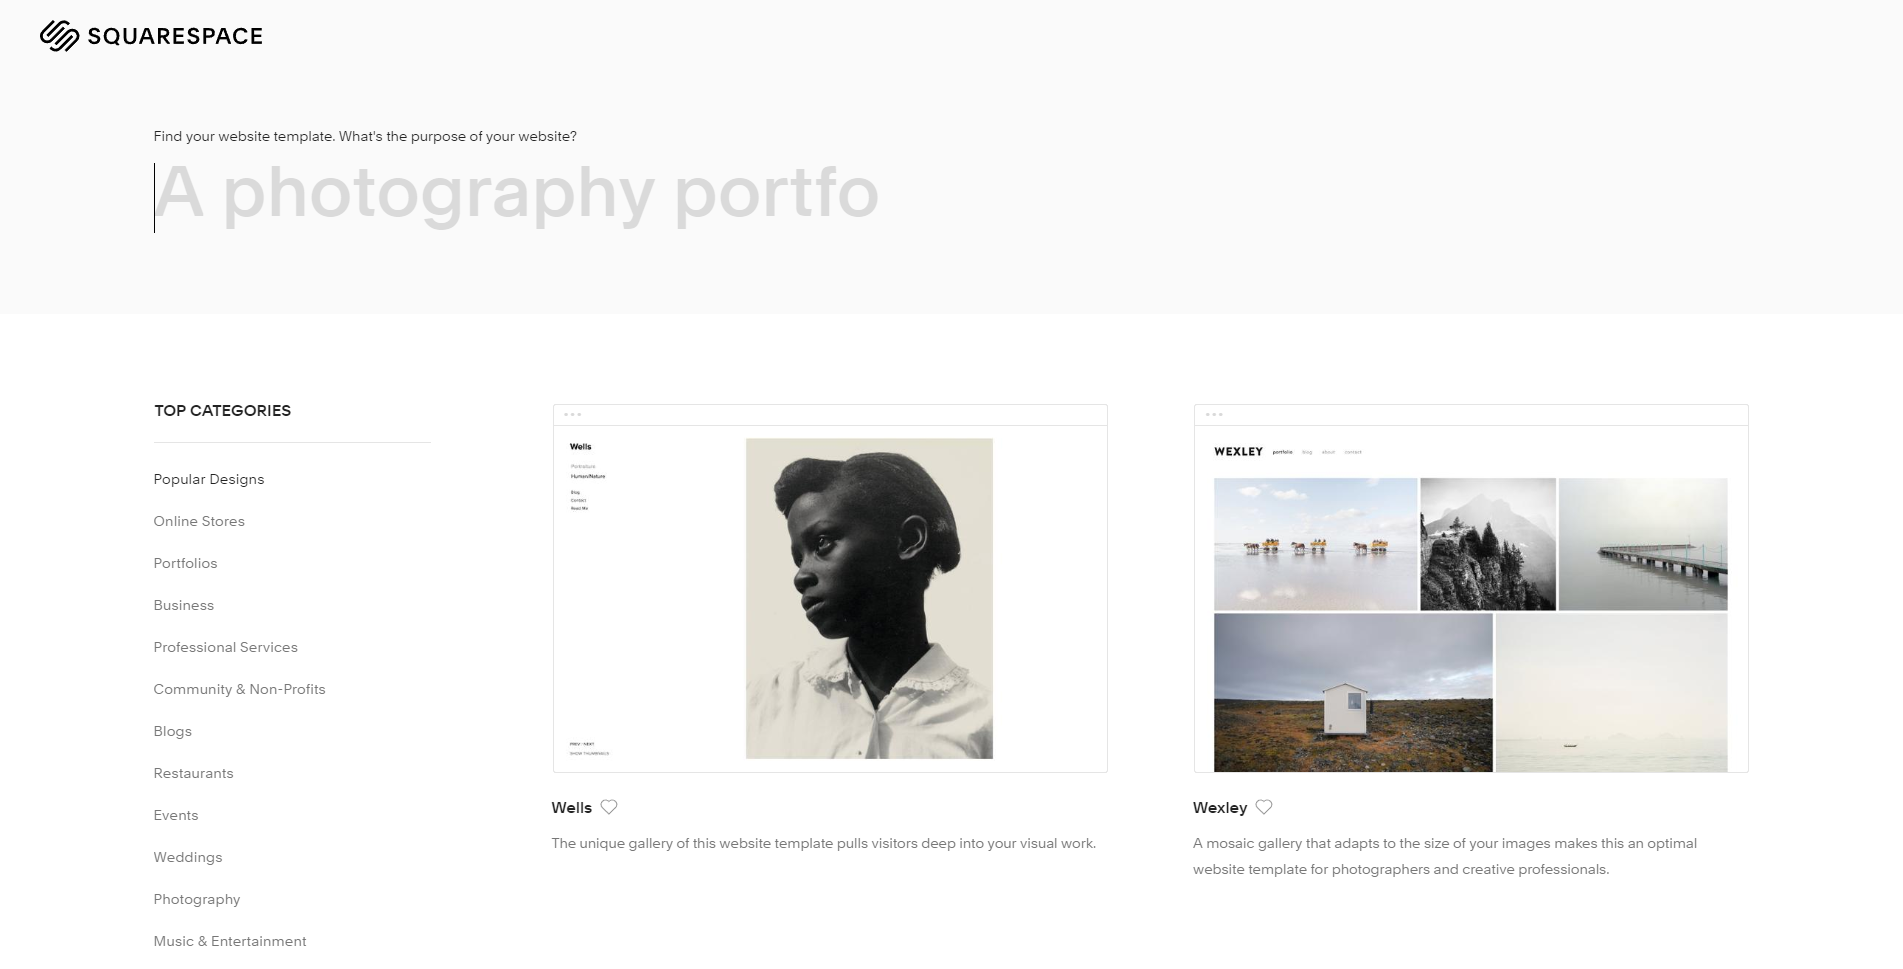 Squarespace - Get Started - Choose your Template 2.png